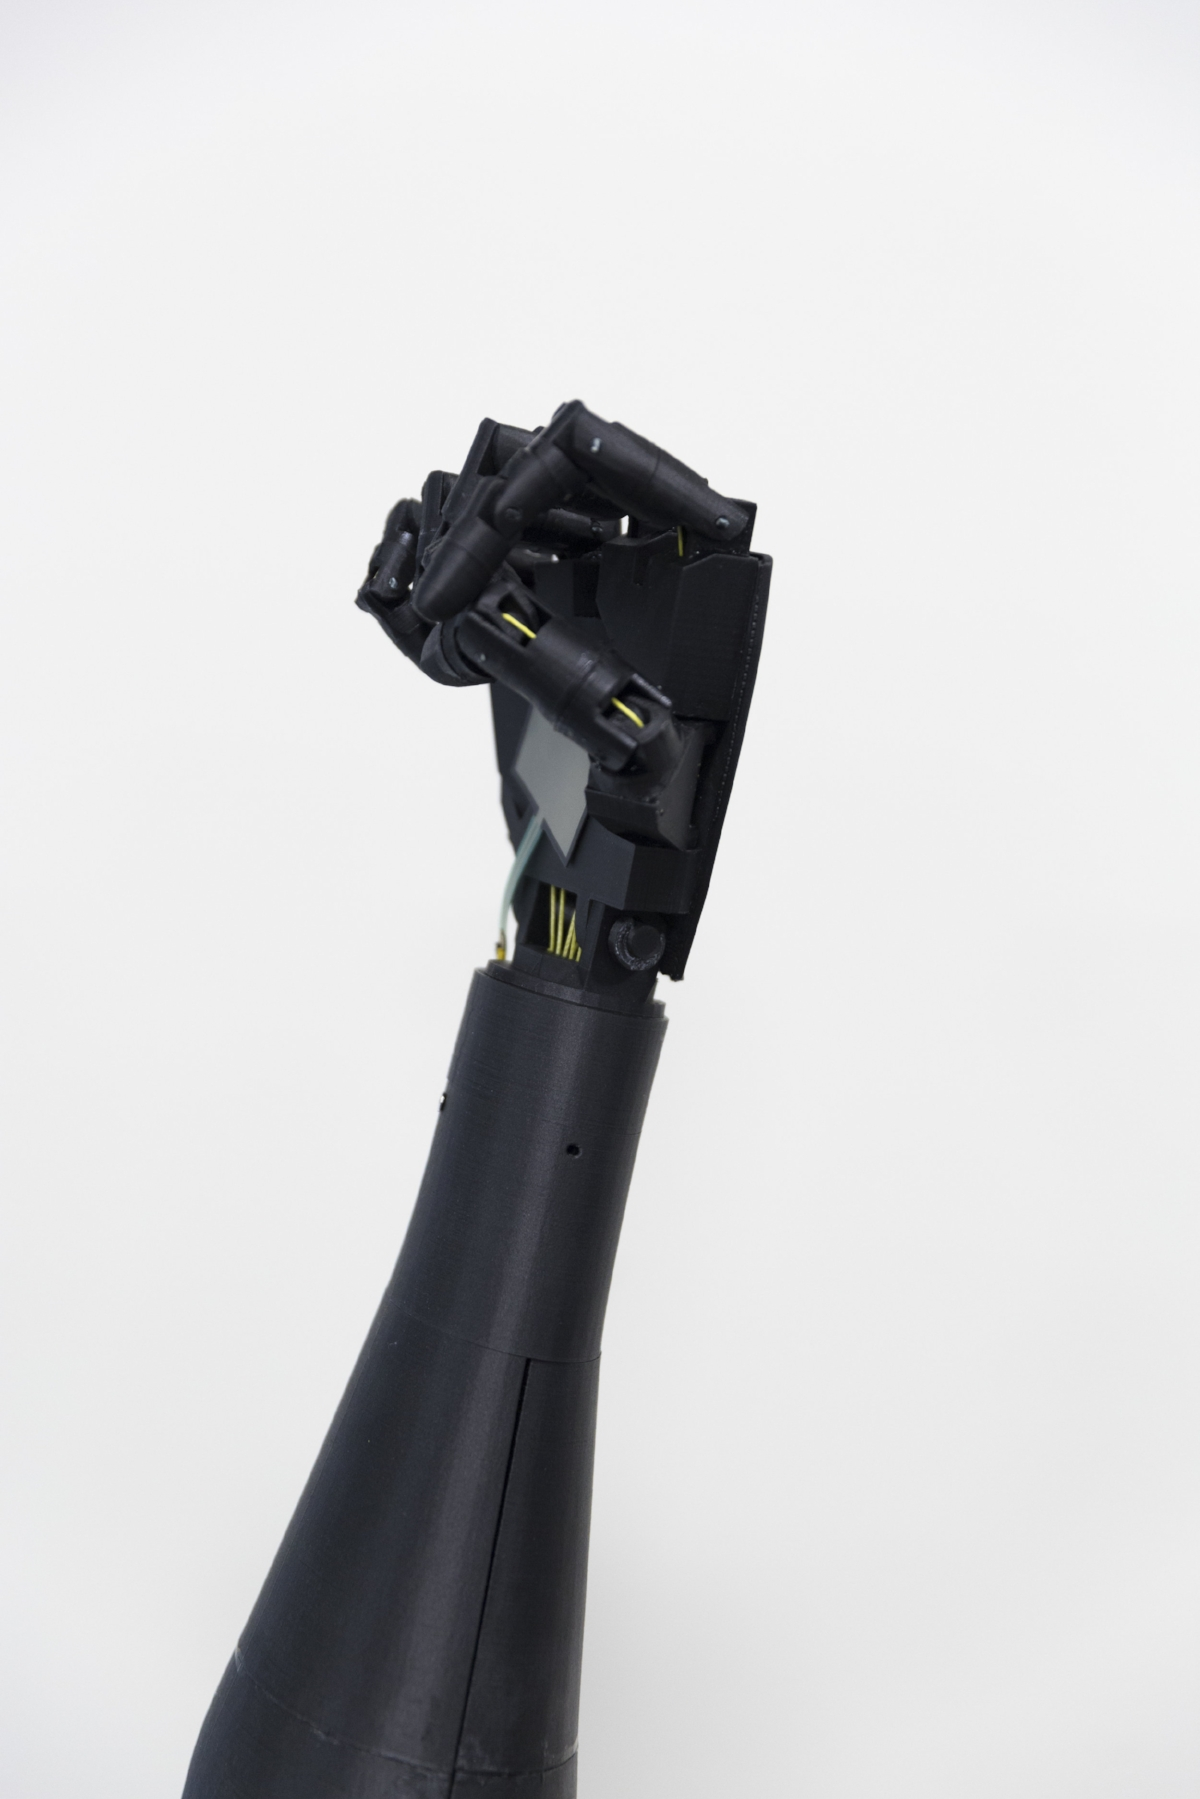 Tendon driven 3D Printed hand equipped